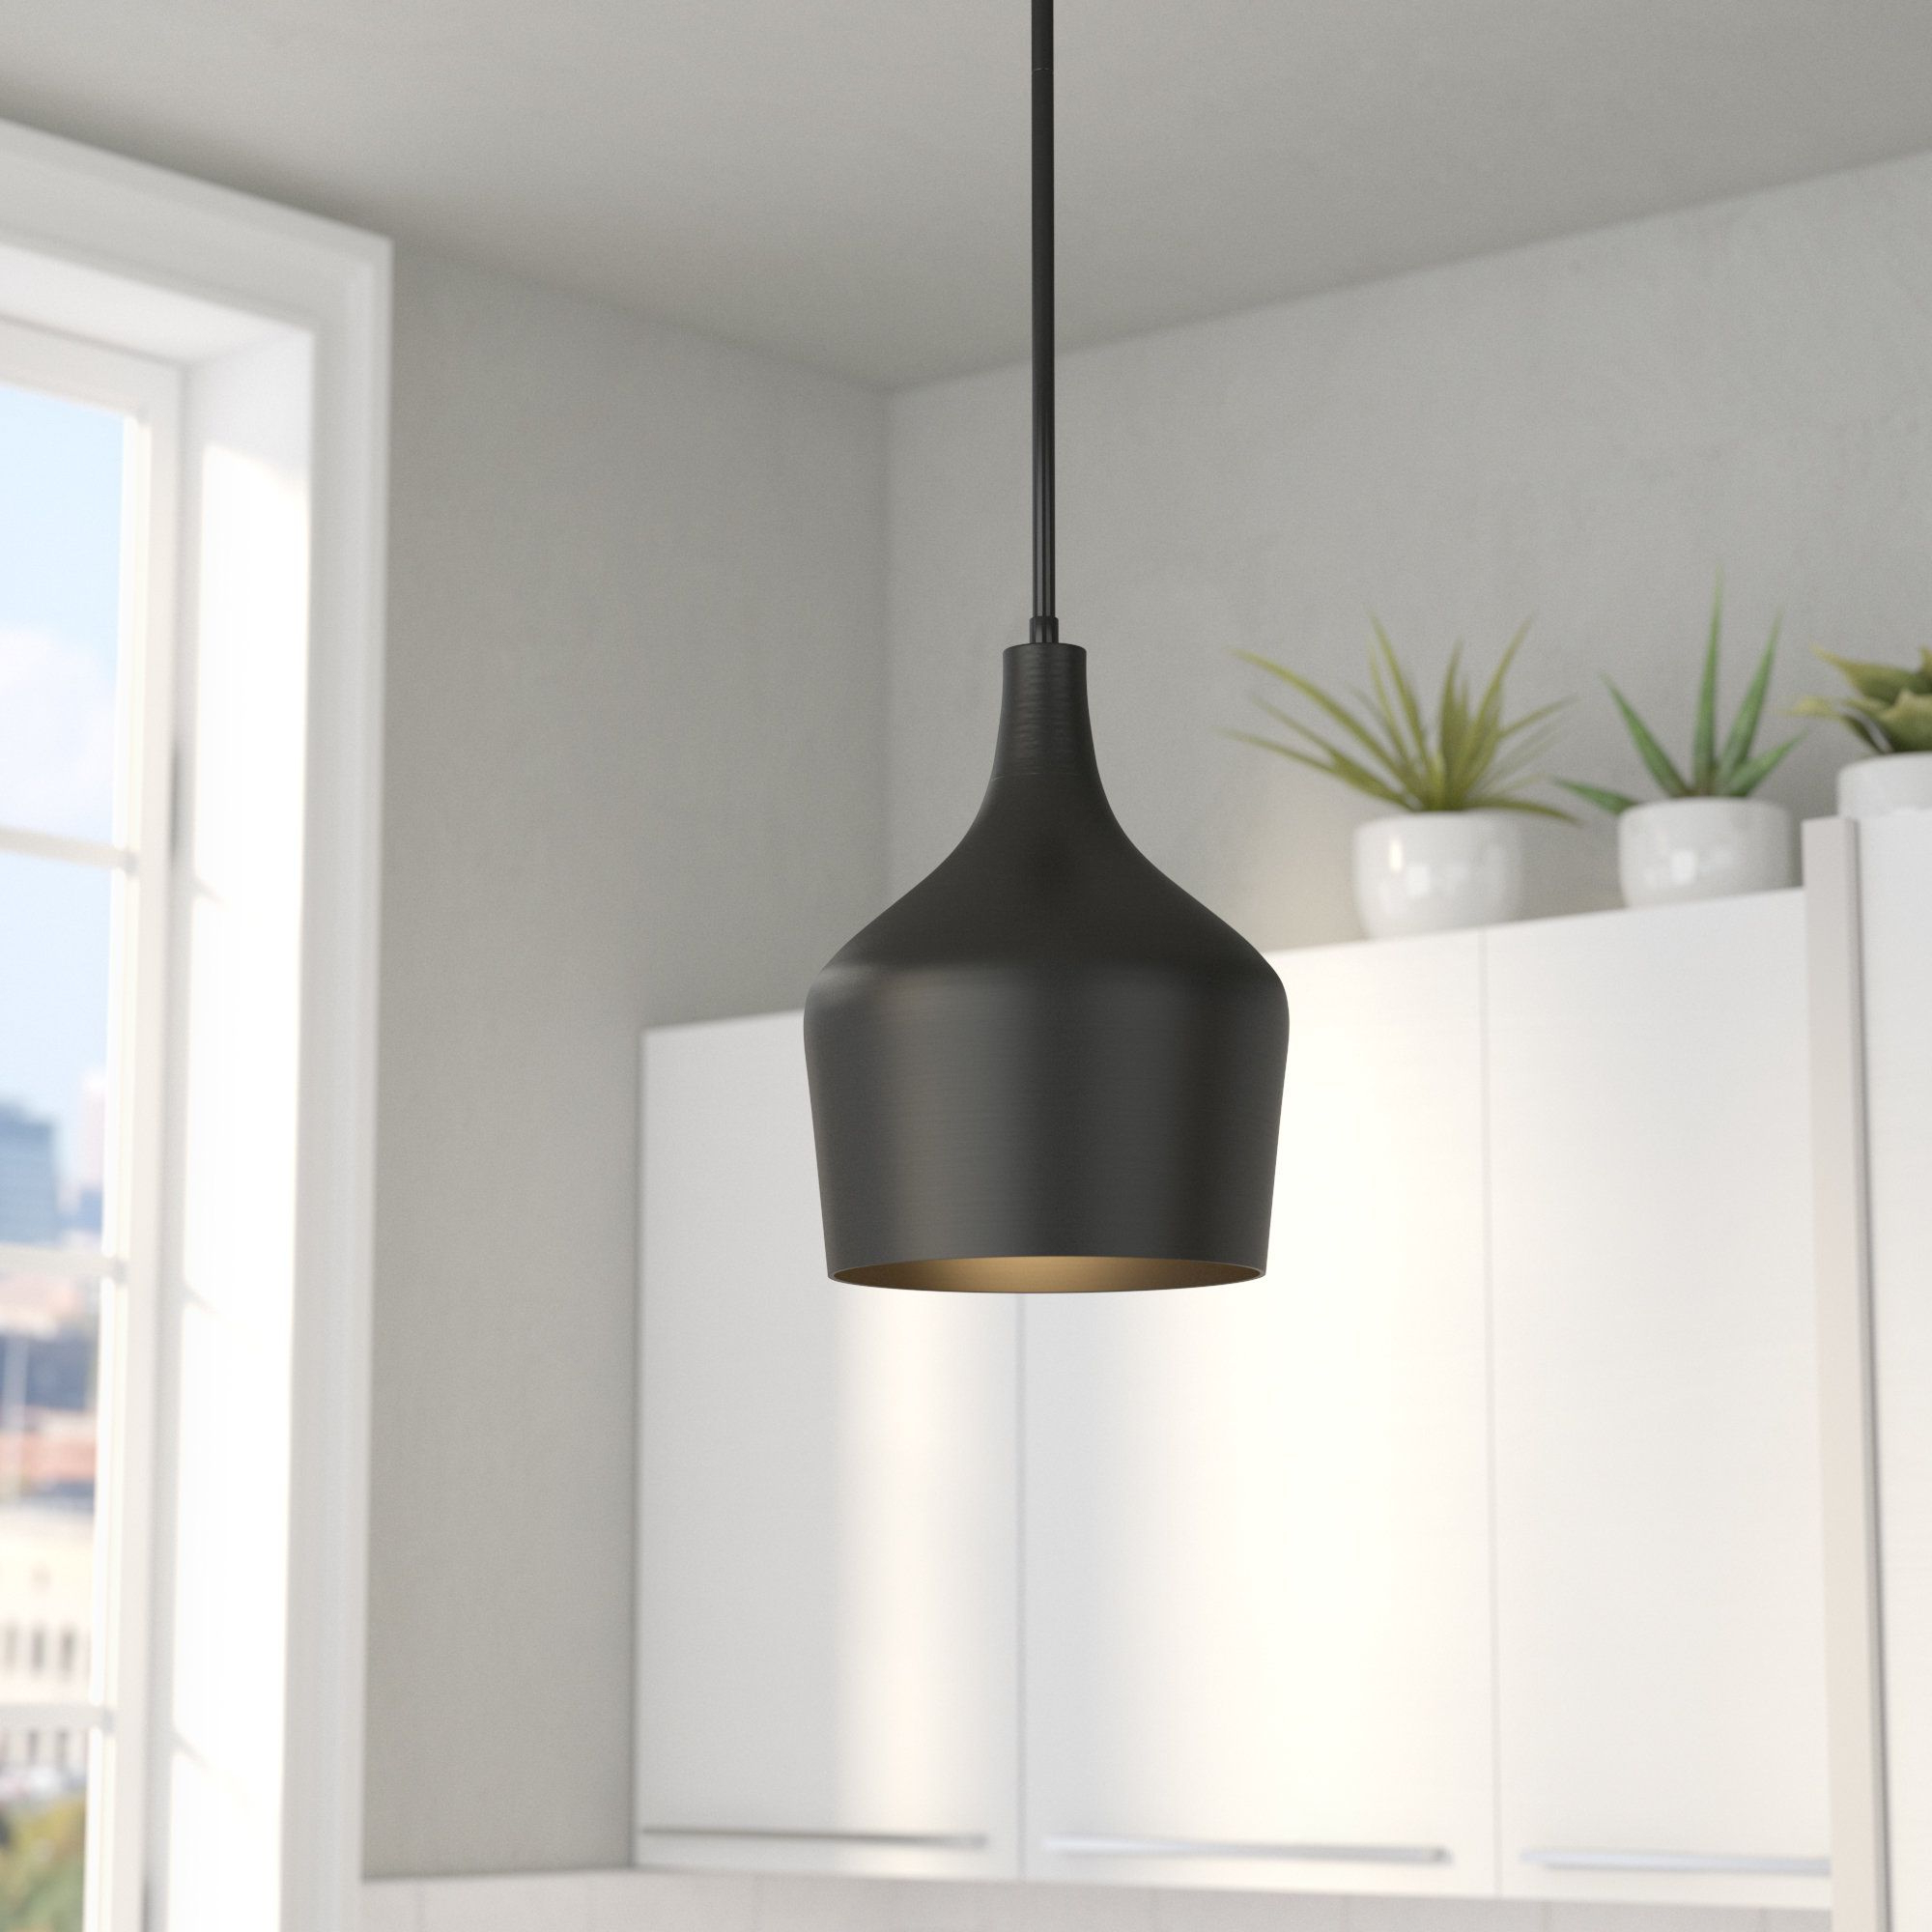 Knoxville 1 Light Single Teardrop Pendants With 2019 Knoxville 1 Light Geometric Pendant (View 10 of 25)